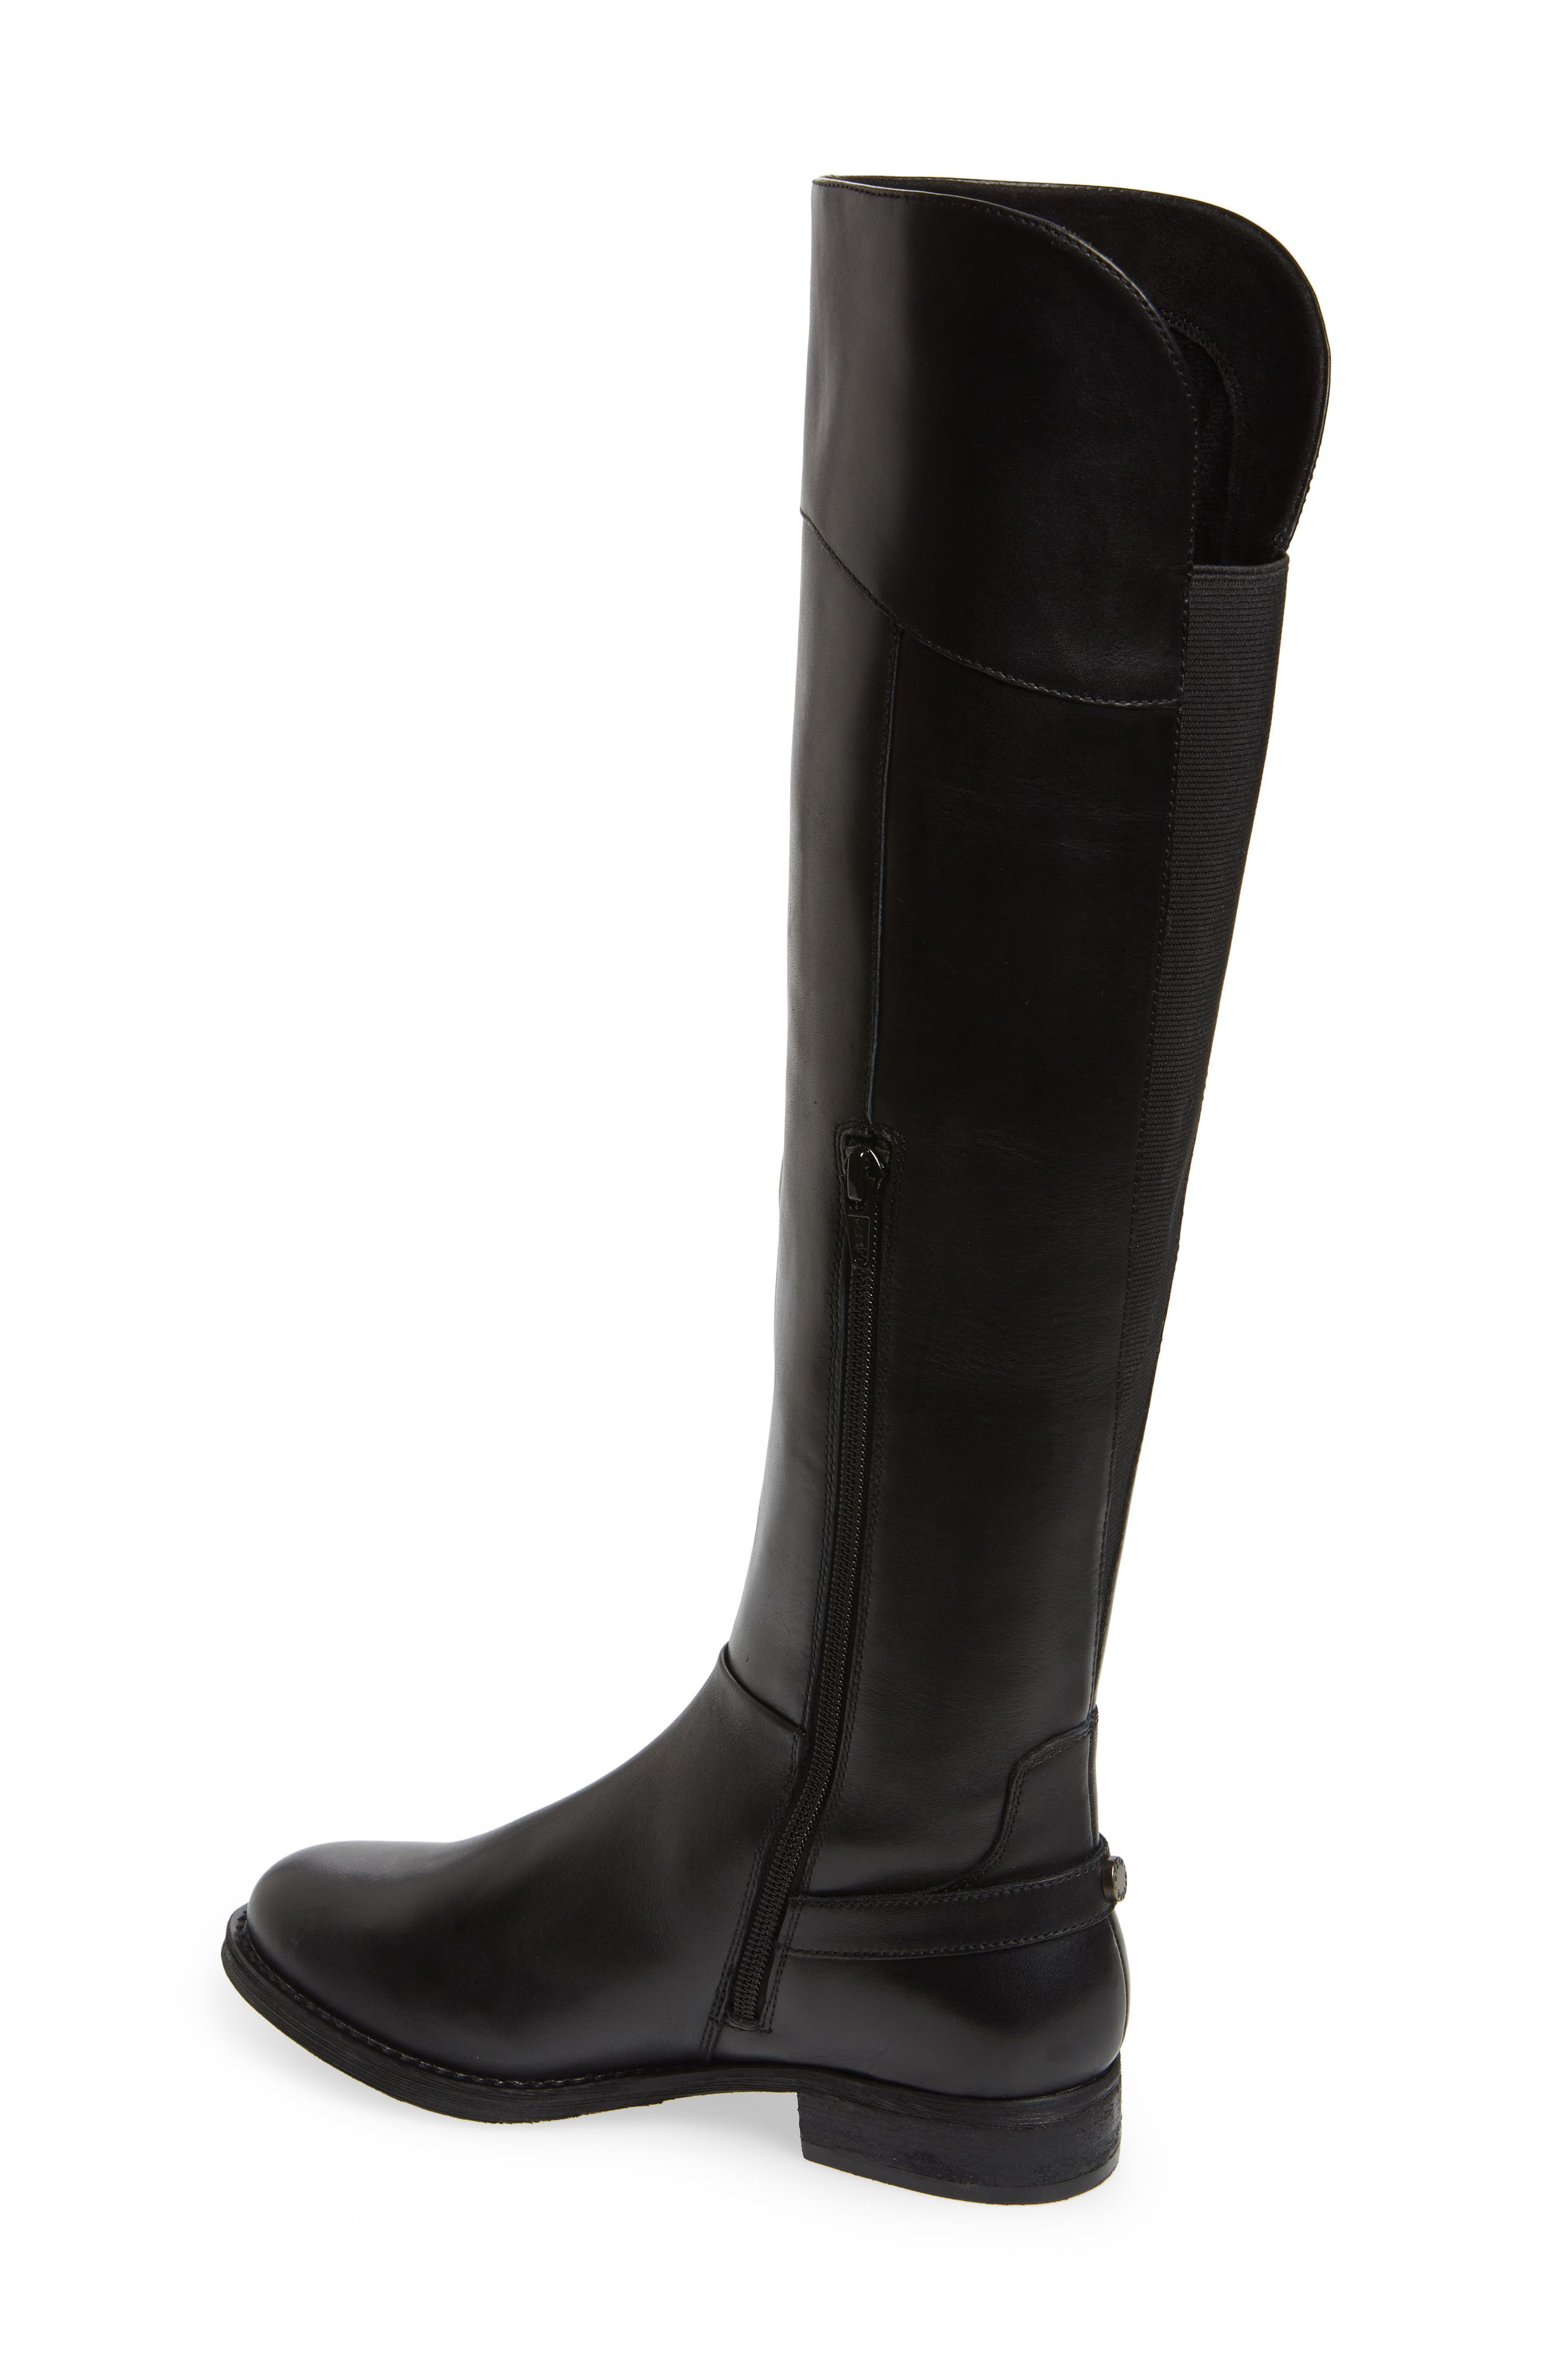 Marianne Over the Knee Boot,                             Alternate thumbnail 2, color,                             BLACK LEATHER